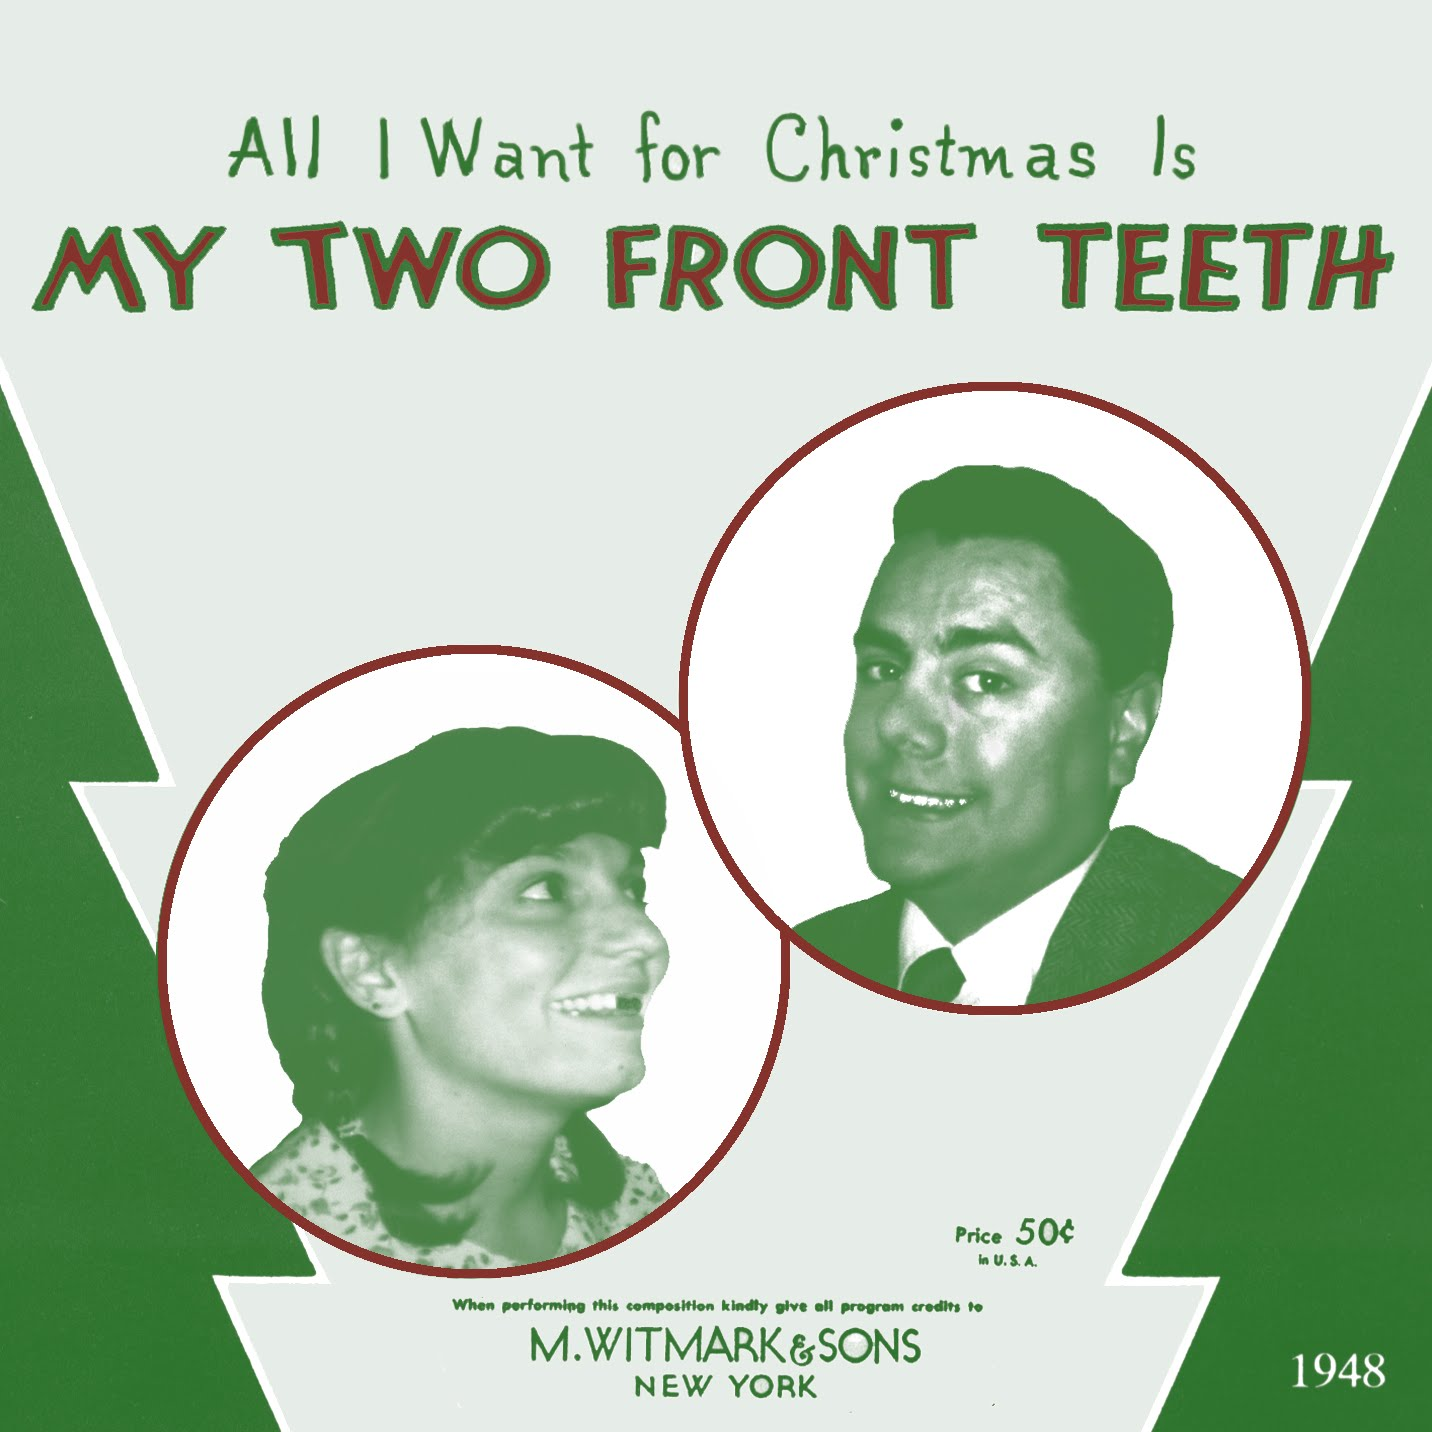 Two Front Teeth Christmas Card